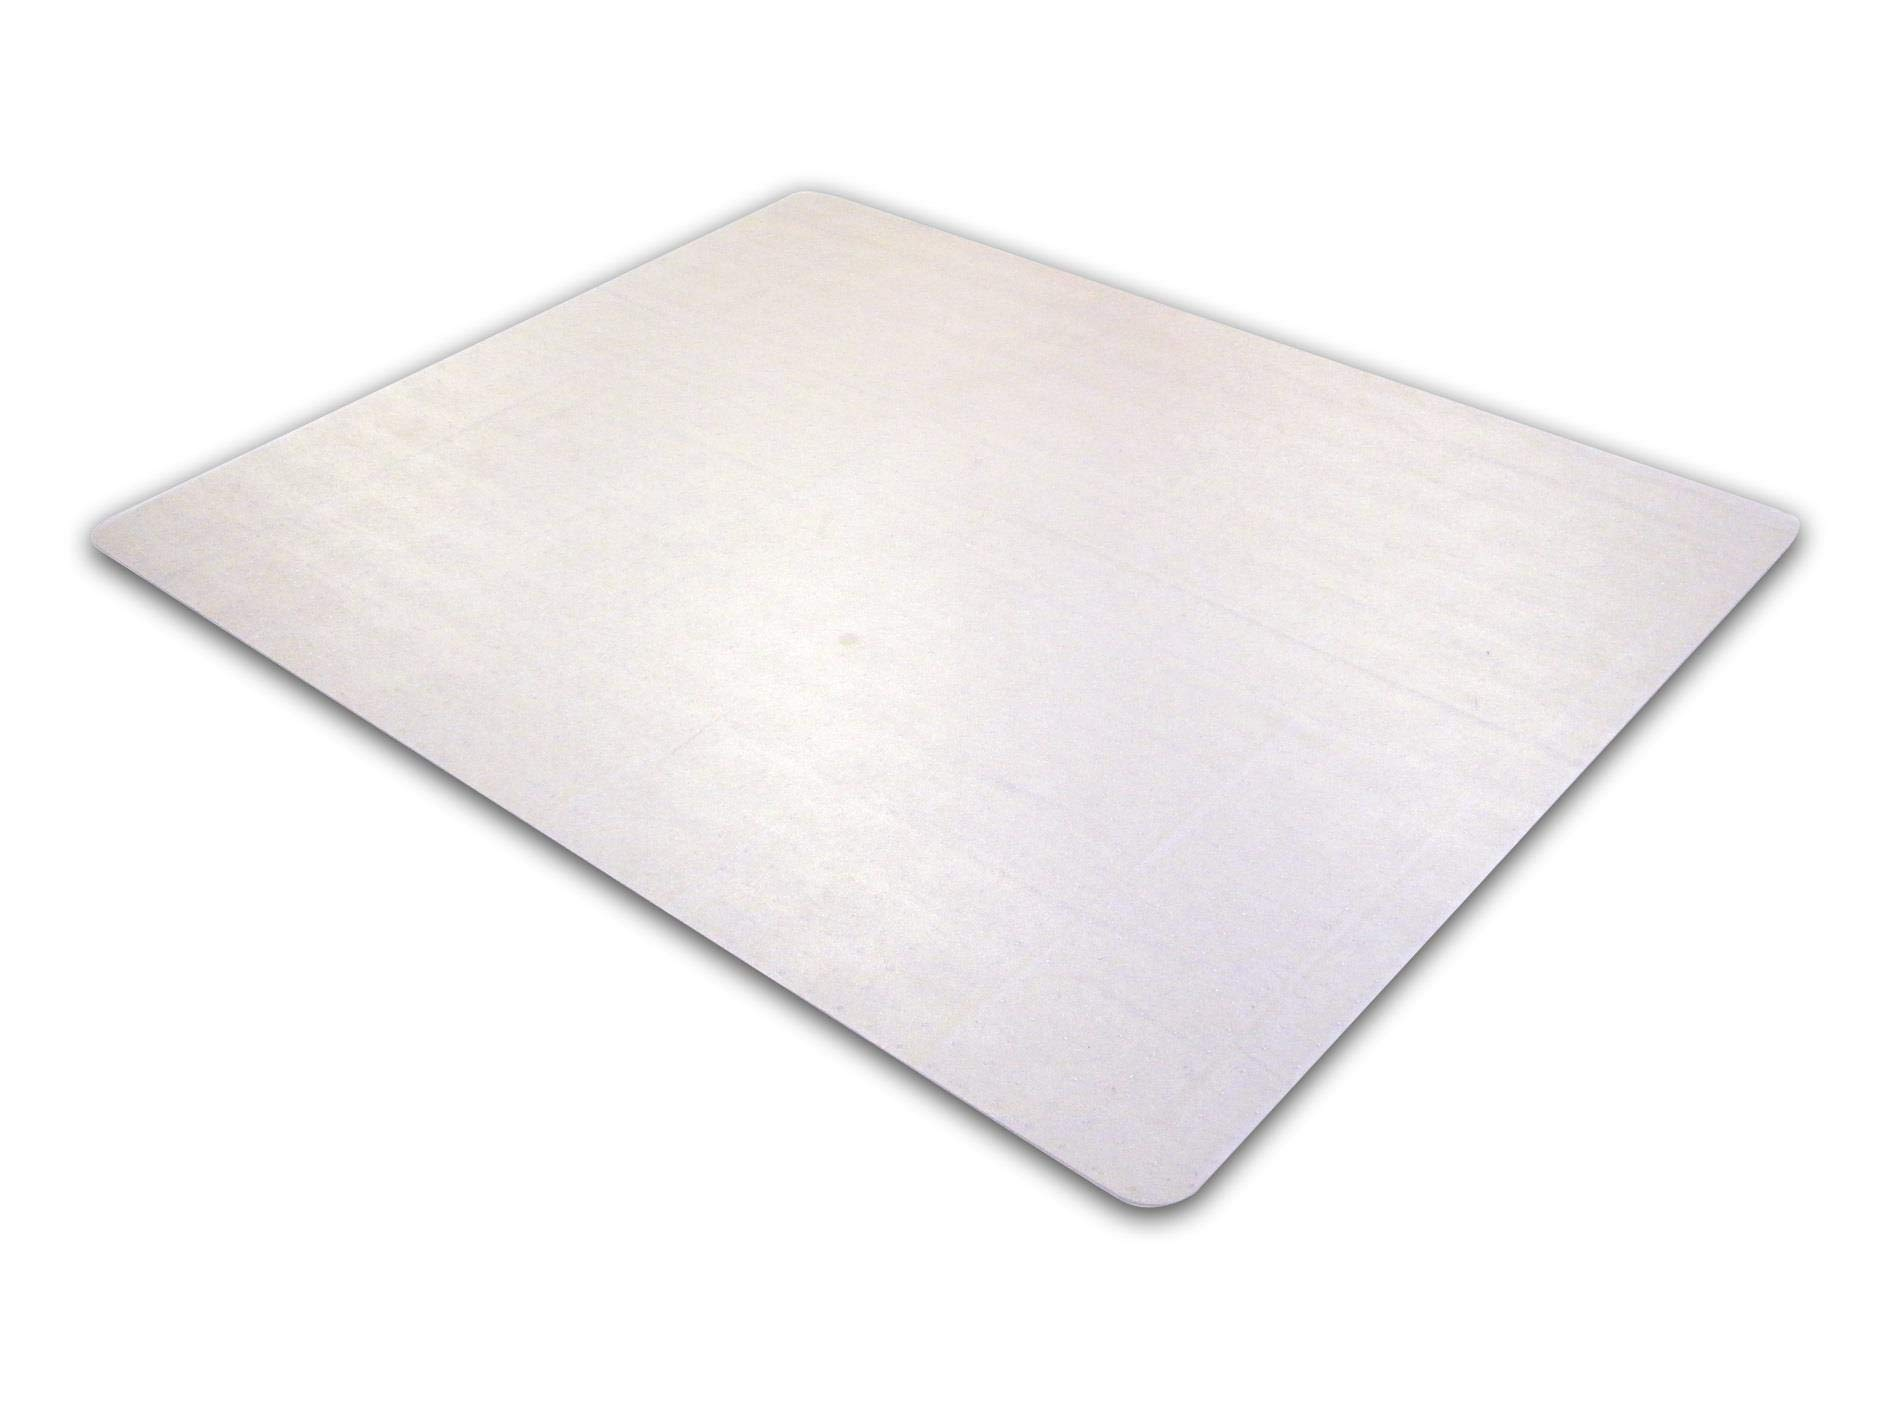 Floortex Cleartex Ultimat Polycarbonate Chair Mat for Carpets Over 1/2'' Thick, 60'' x 48'', Rectangular, Clear (1115227ER) by Floortex